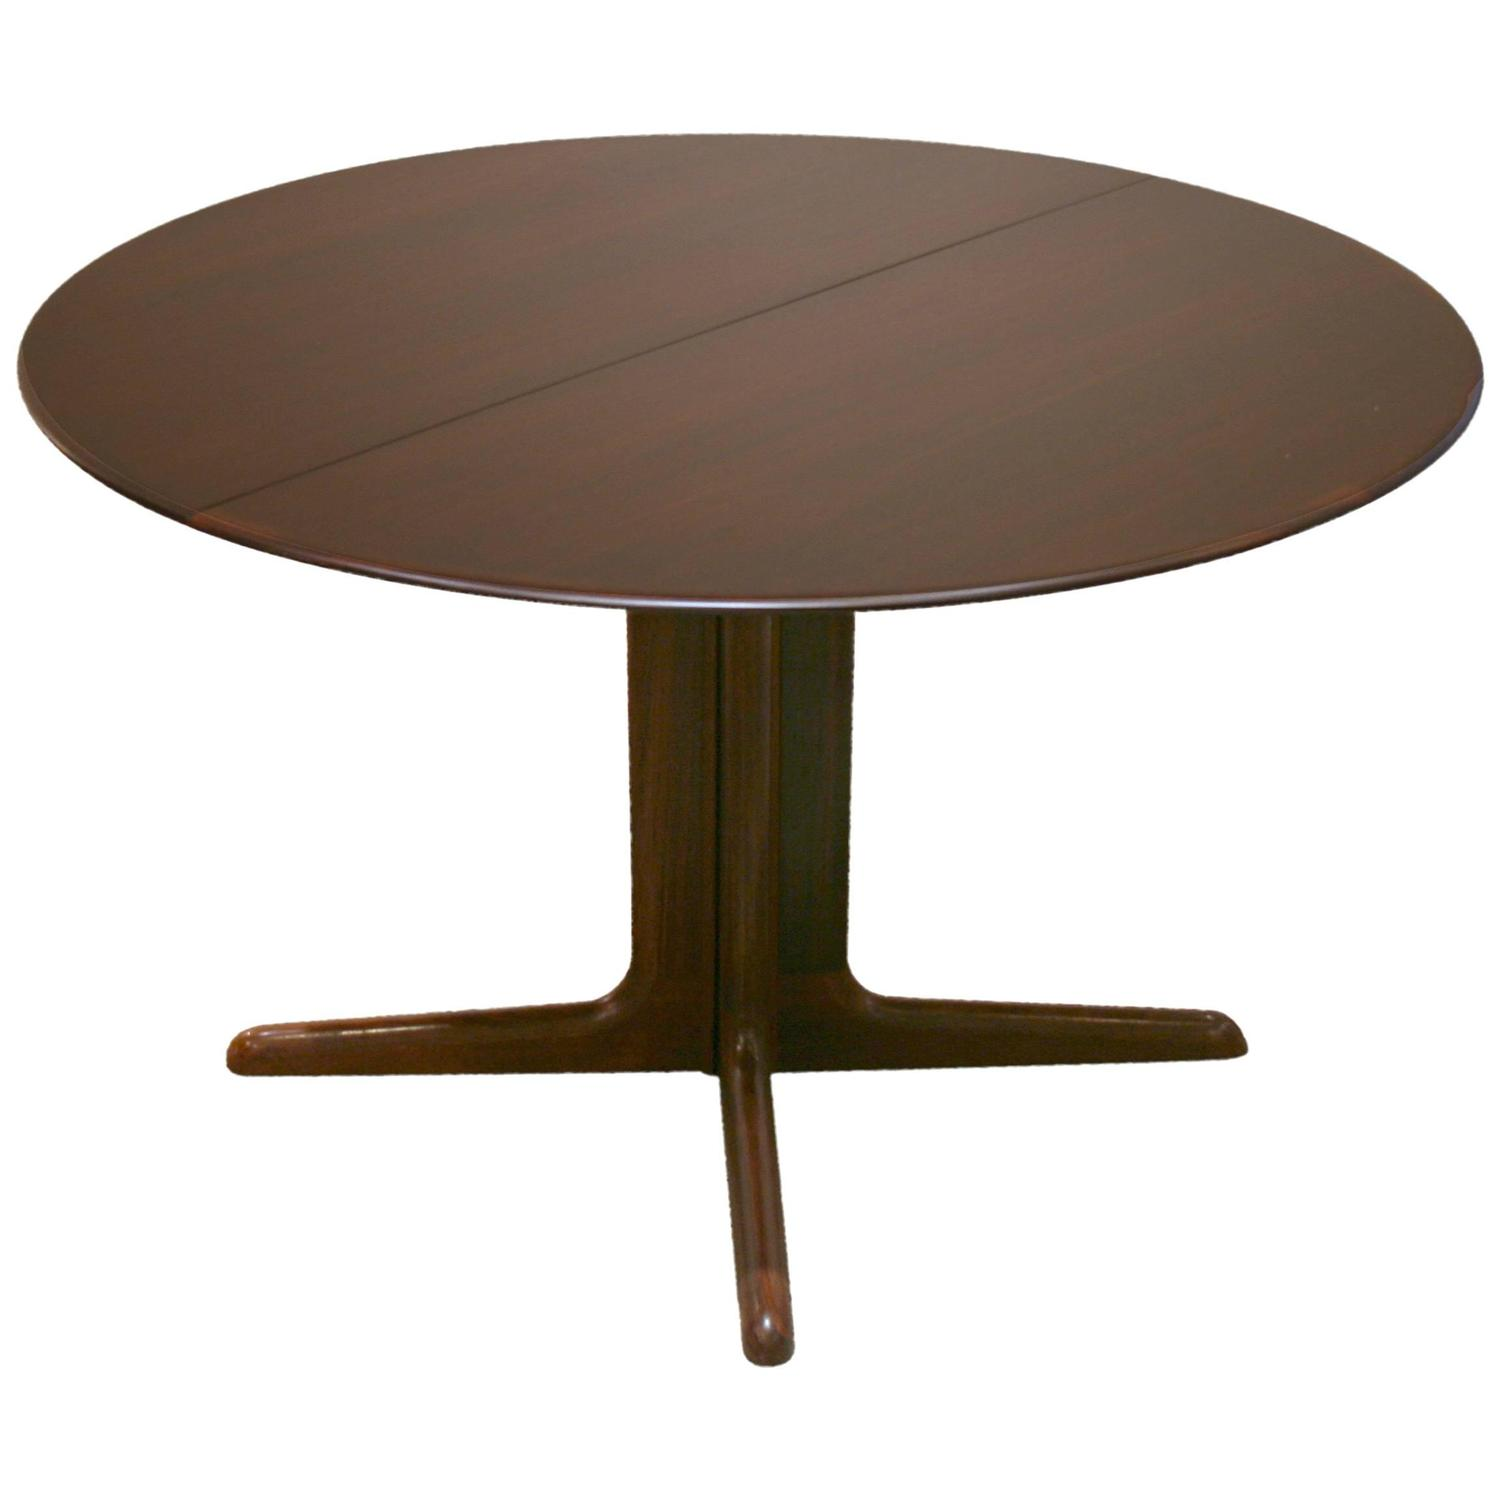 Vintage danish rosewood round pedestal base dining table for Dining room table pedestal bases